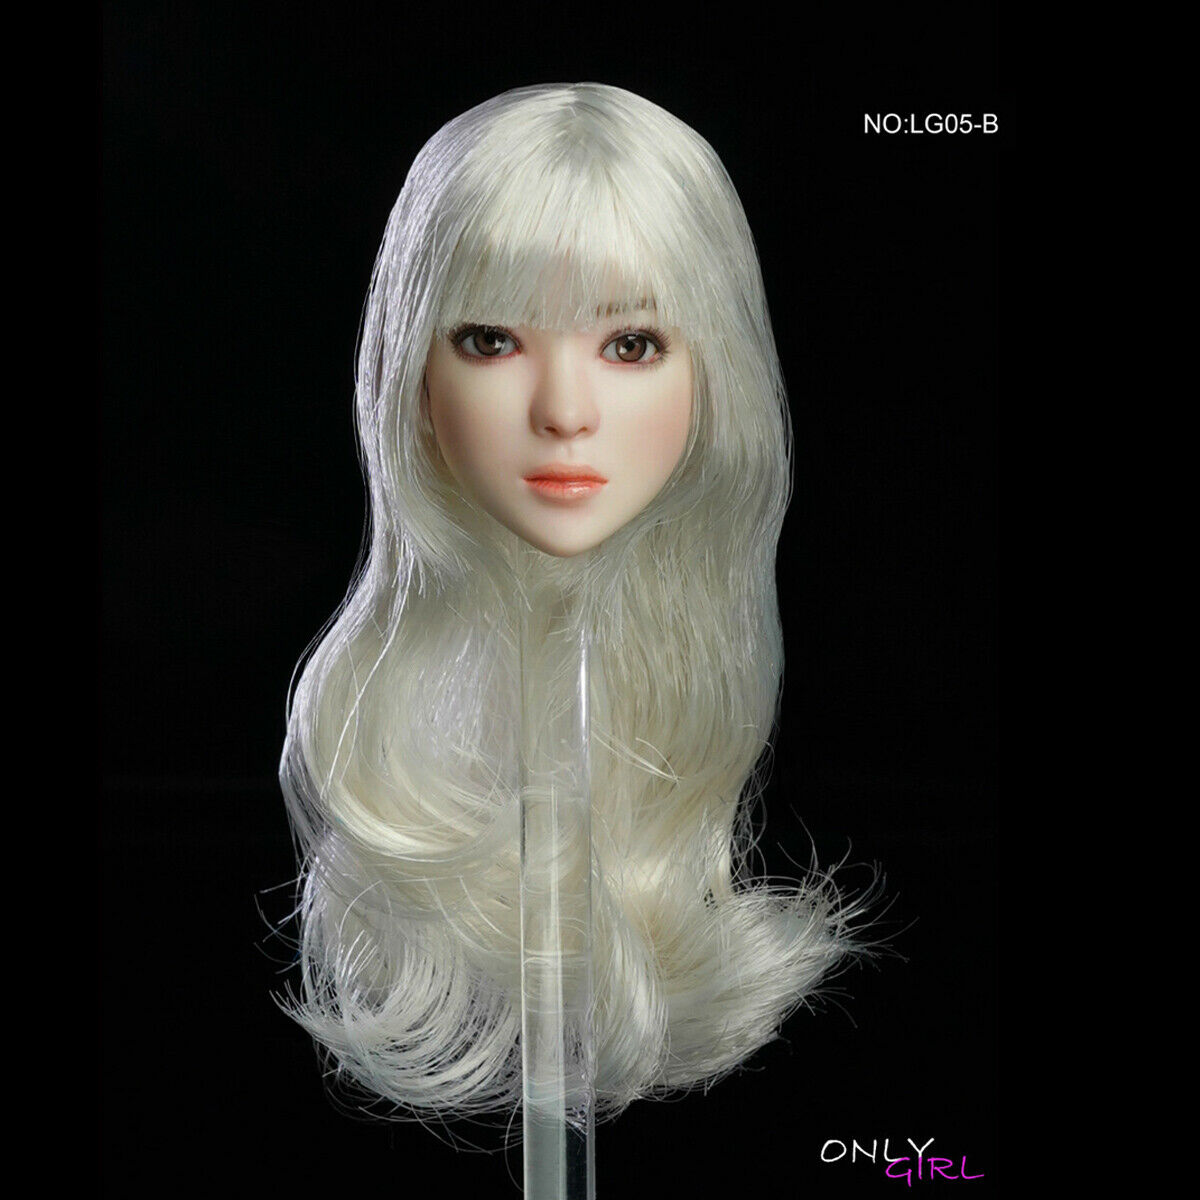 ONLYGIRL LG05B  1 6 Female Head Sculpt Movable Eyes For 12  cifra TBLeague corpo  qualità ufficiale